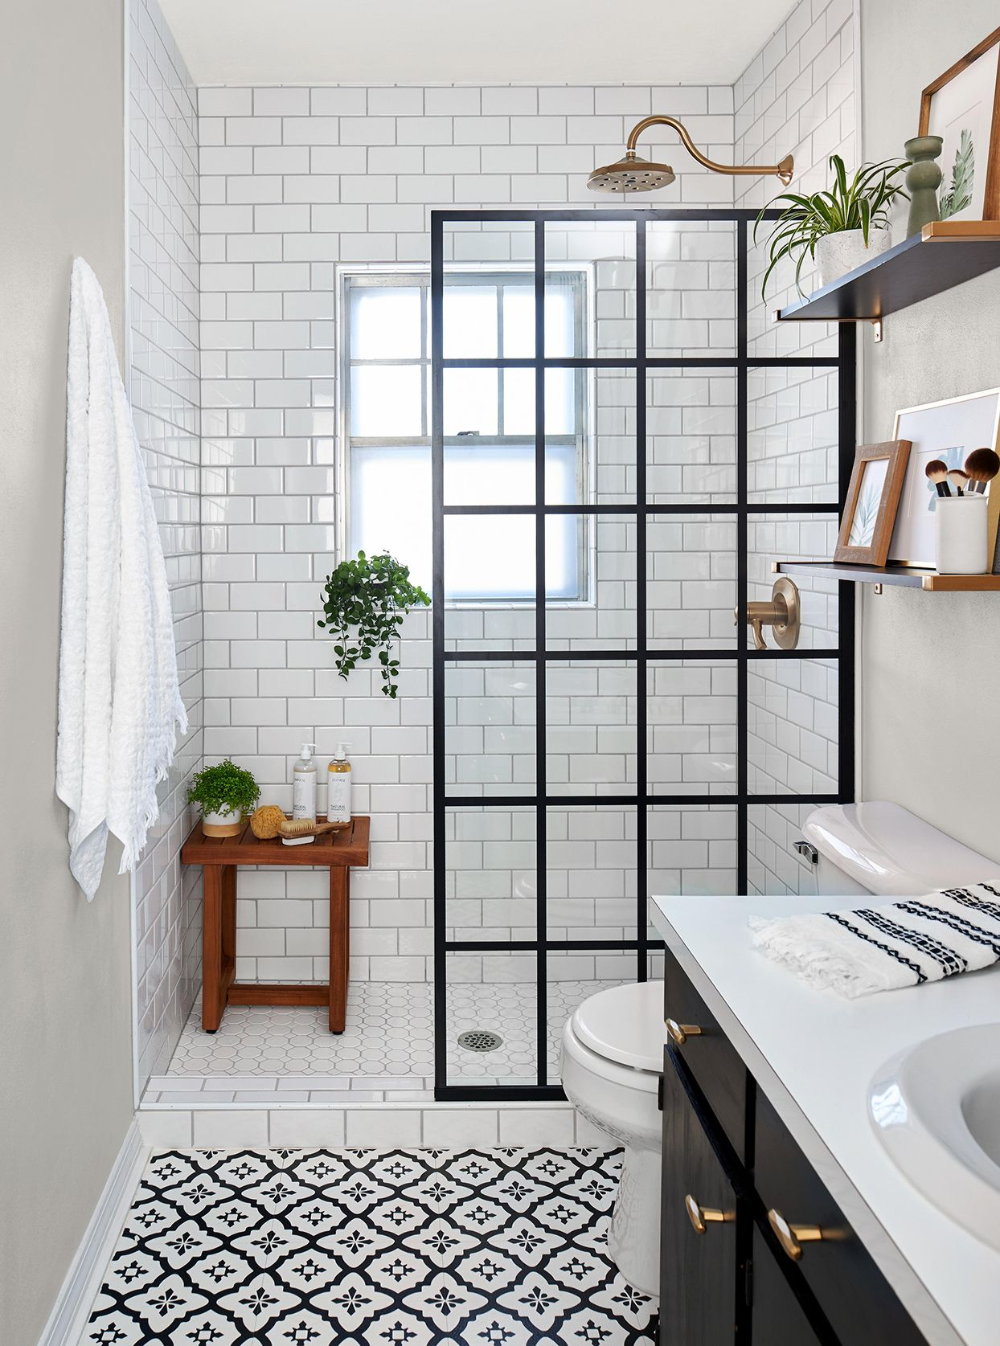 Awesome Bathroom Shower Remodel Ideas 25 55 Stunning Small Bathroom Makeovers Ideas Fo Bathroom Interior Design Small Bathroom Makeover Small Bathroom Remodel